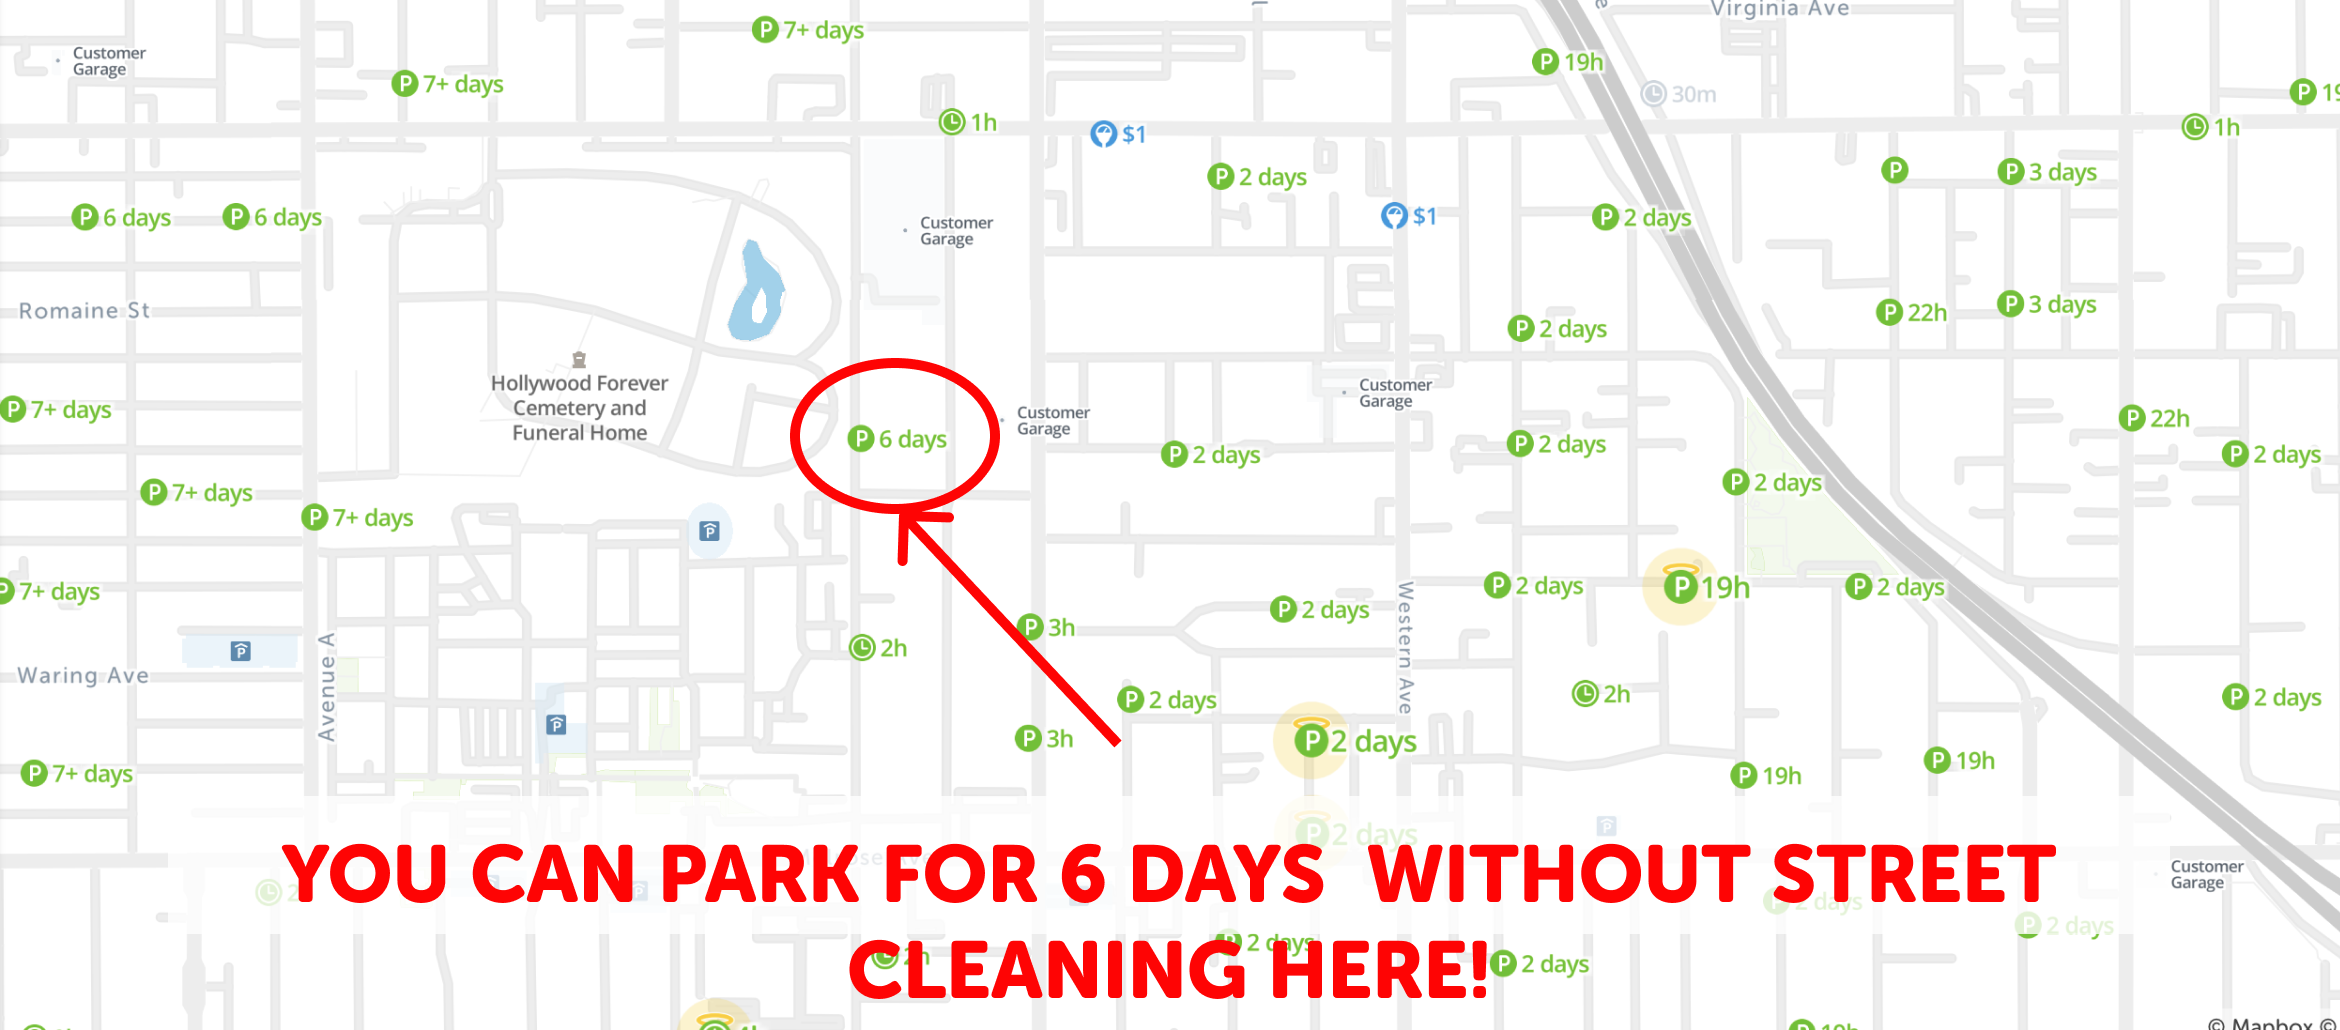 Does Street Sweeping Work On Christmas Eve 2020 2020 Los Angeles Street Sweeping Map, Schedule & Holidays!